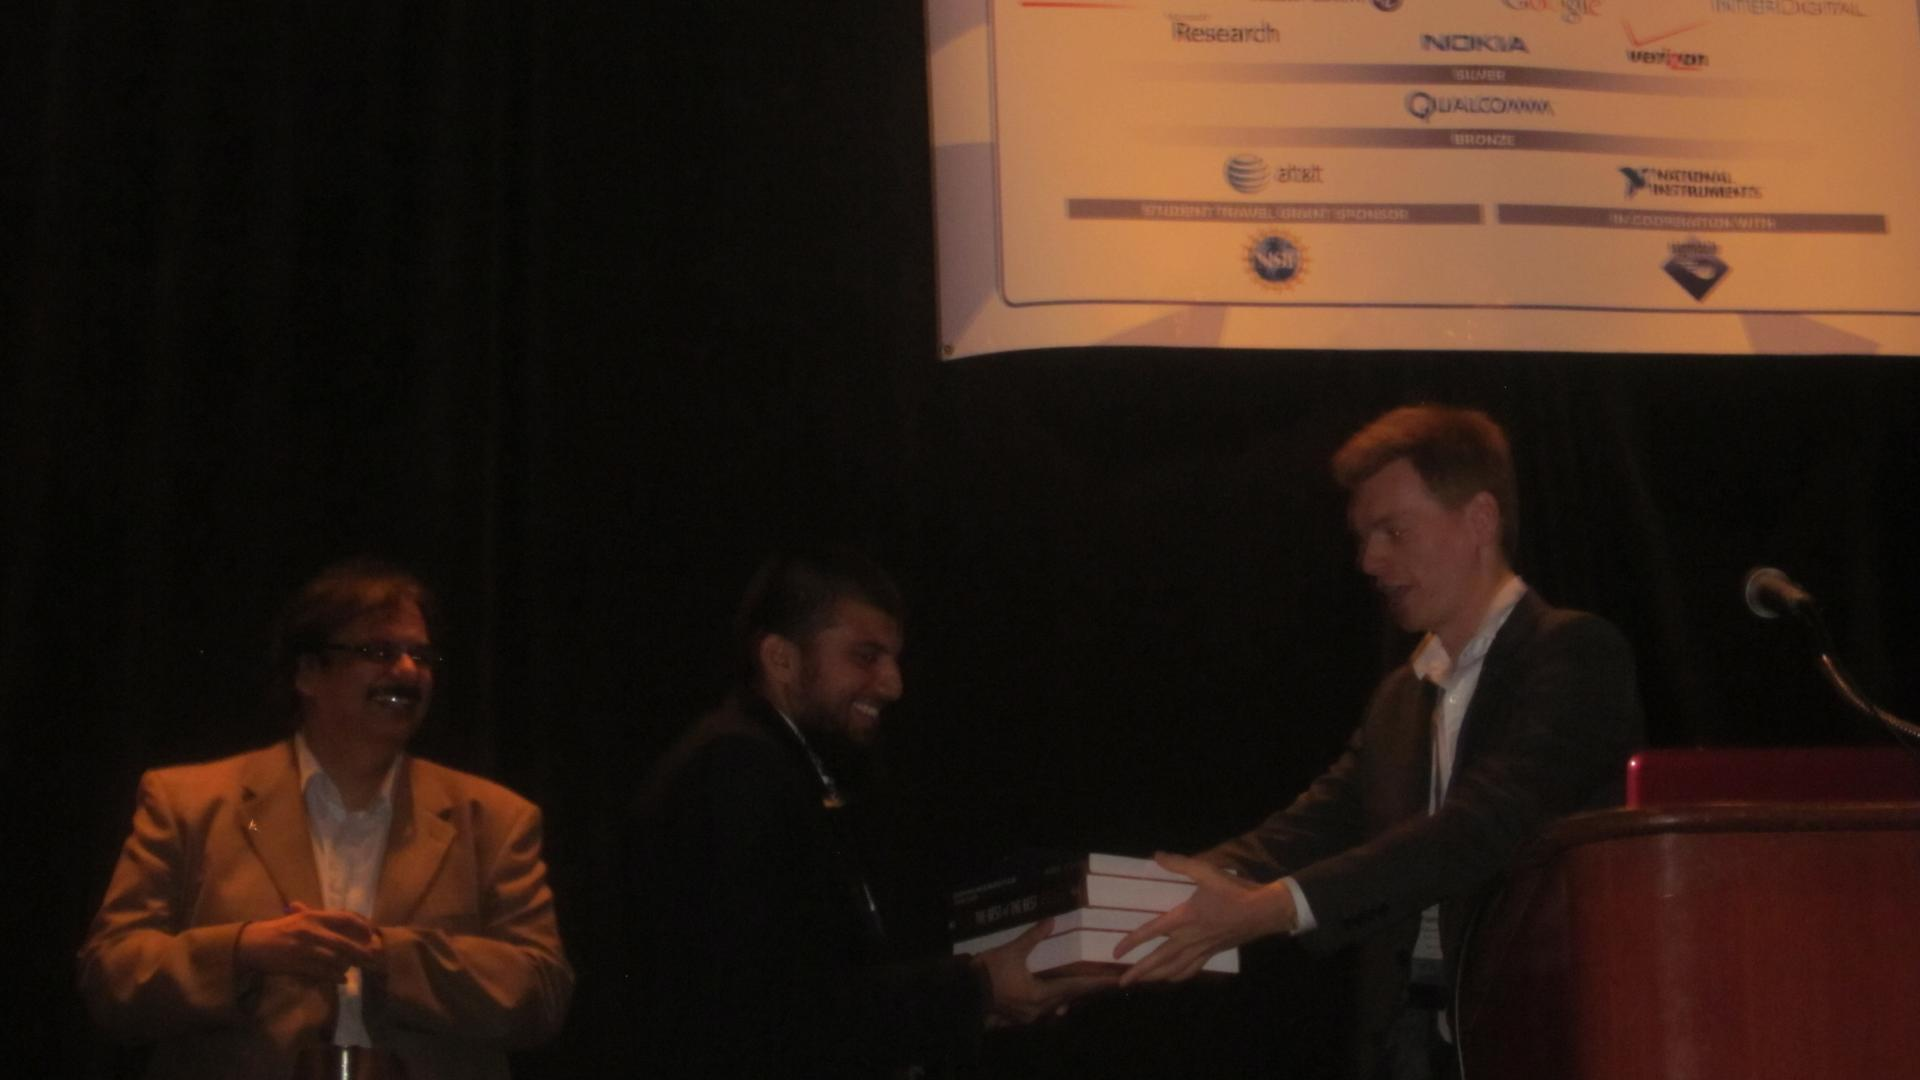 Fahd Ahmed Khan Receiving Best Poster Award At IEEE DYSPAN 2012